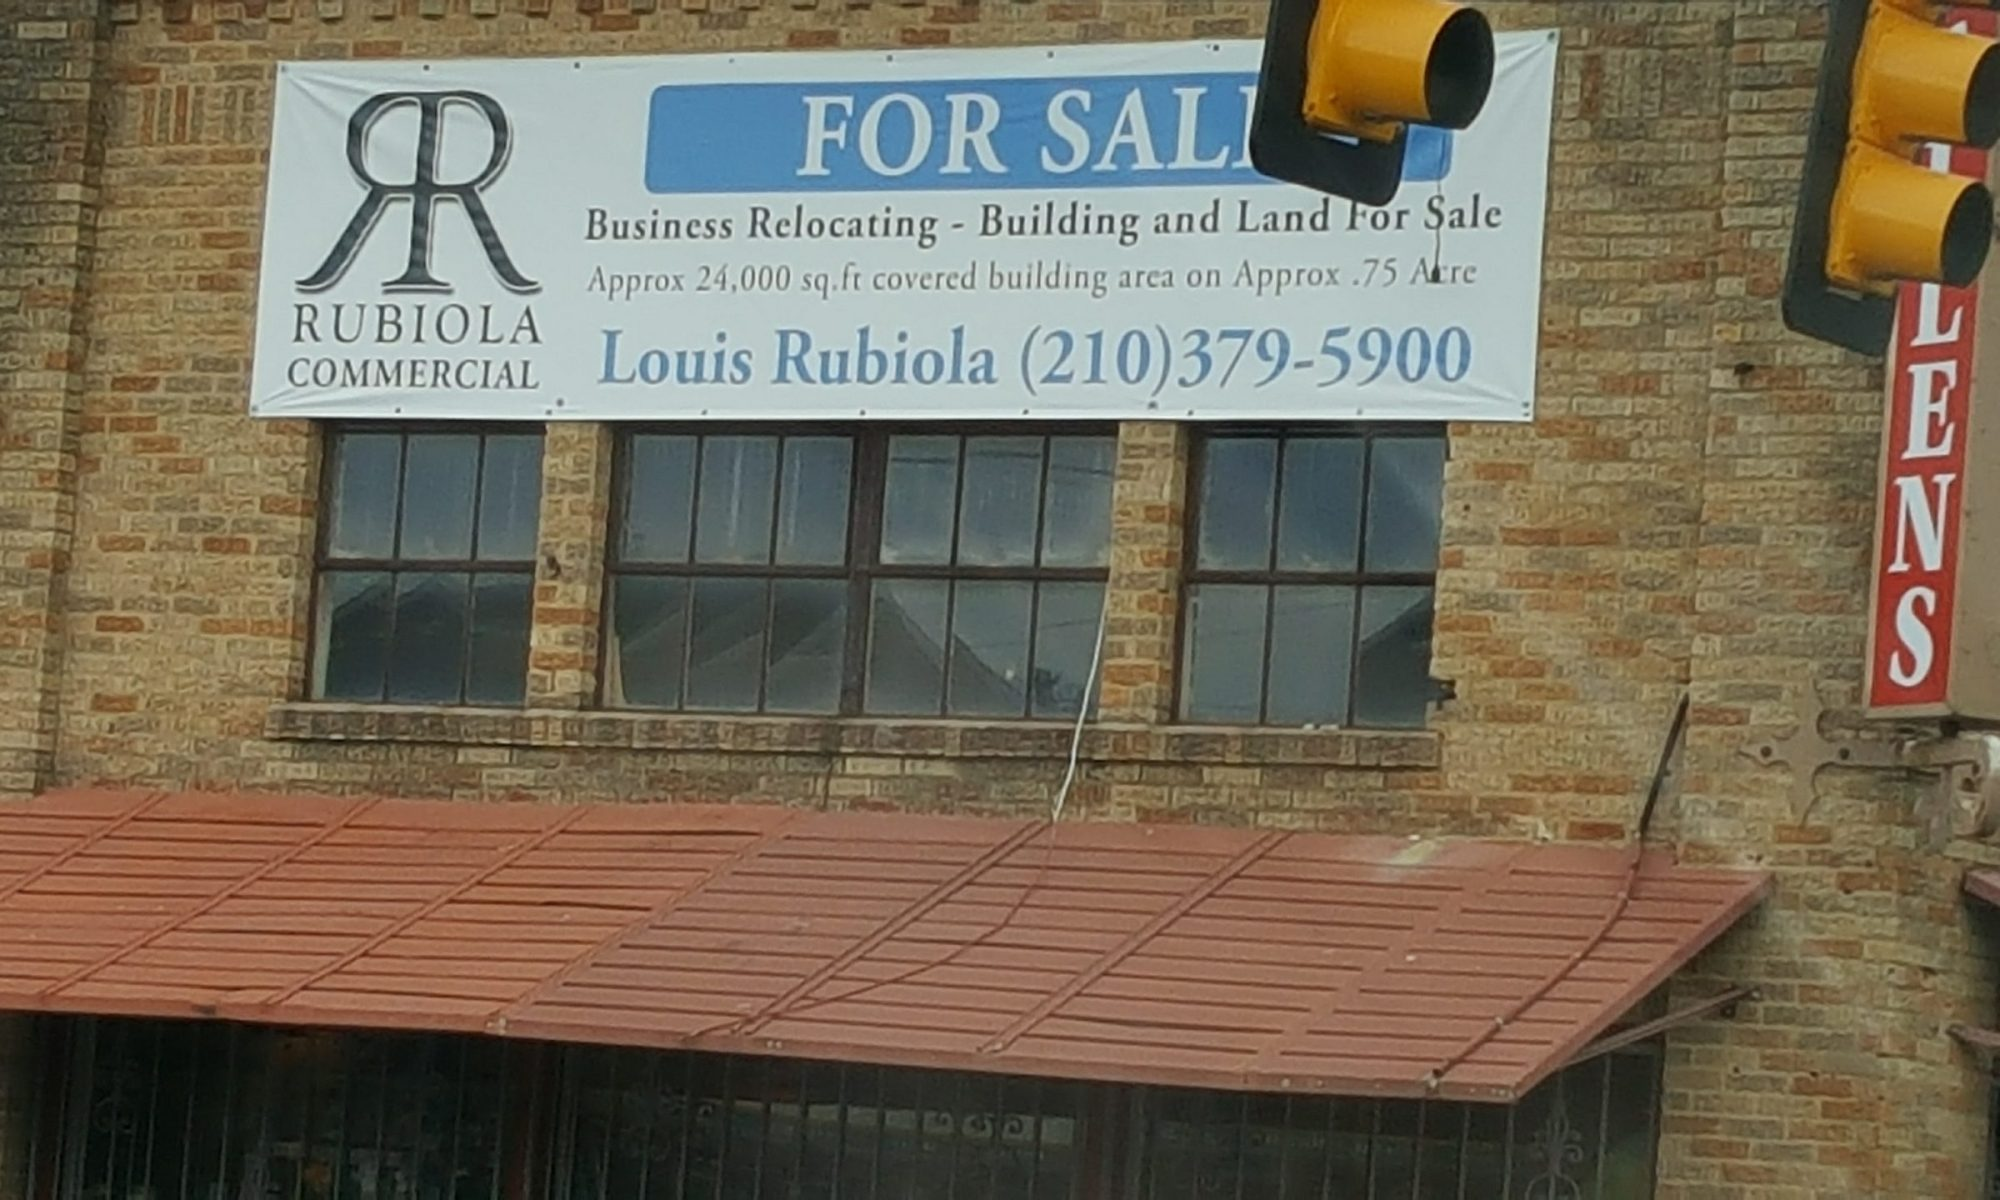 Picture of for sale sign on building